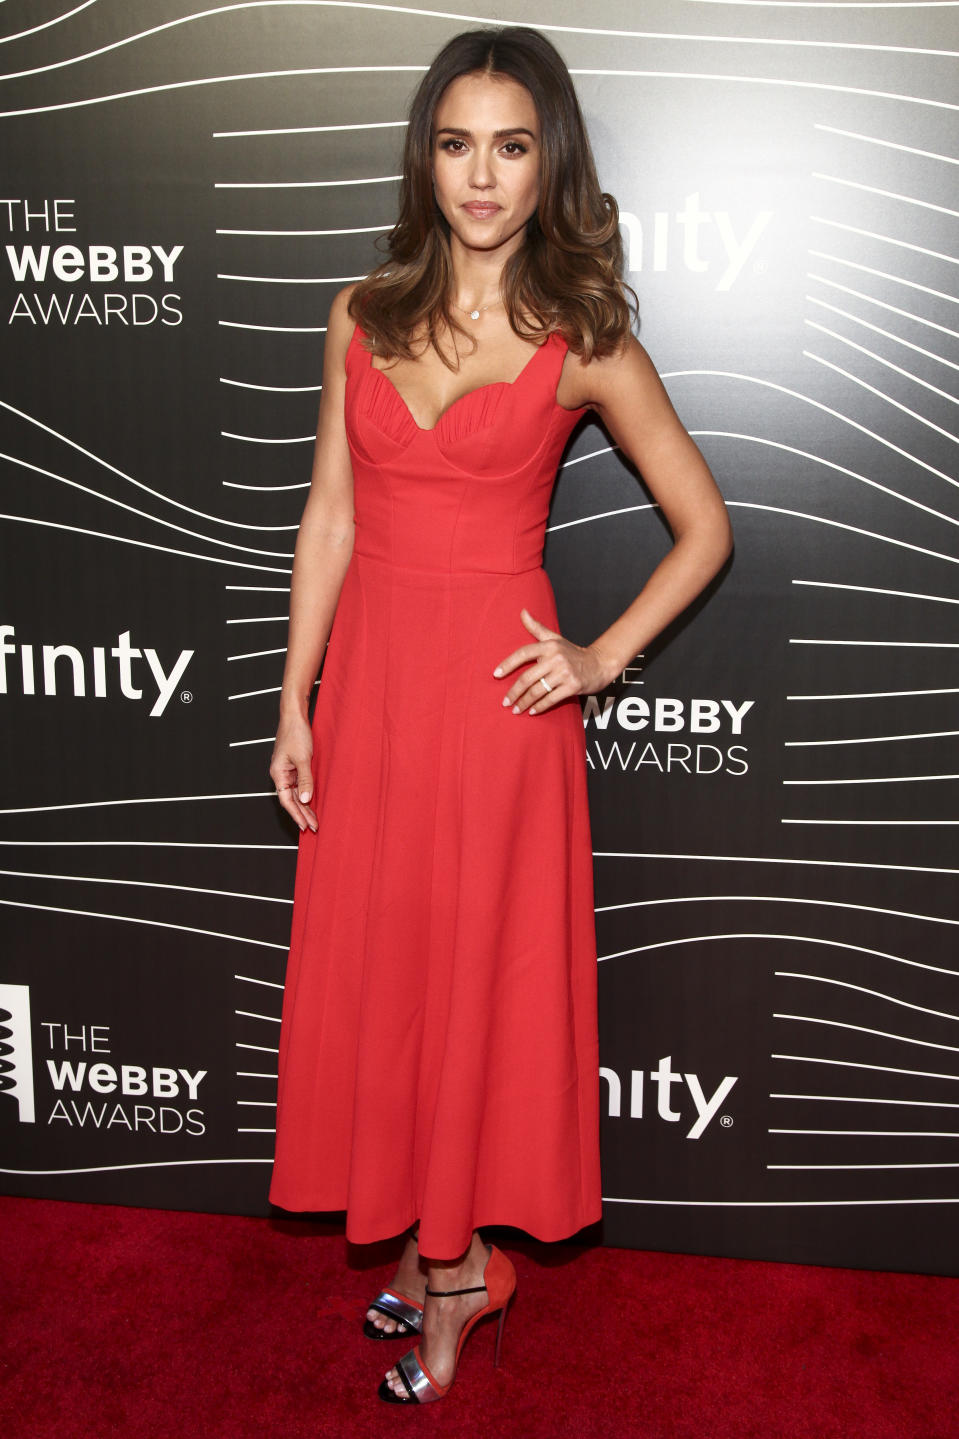 Jessica Alba attends the 20th Annual Webby Awards at Cipriani Wall Street on Monday, May 16, 2016, in New York. (Photo by Andy Kropa/Invision/AP)